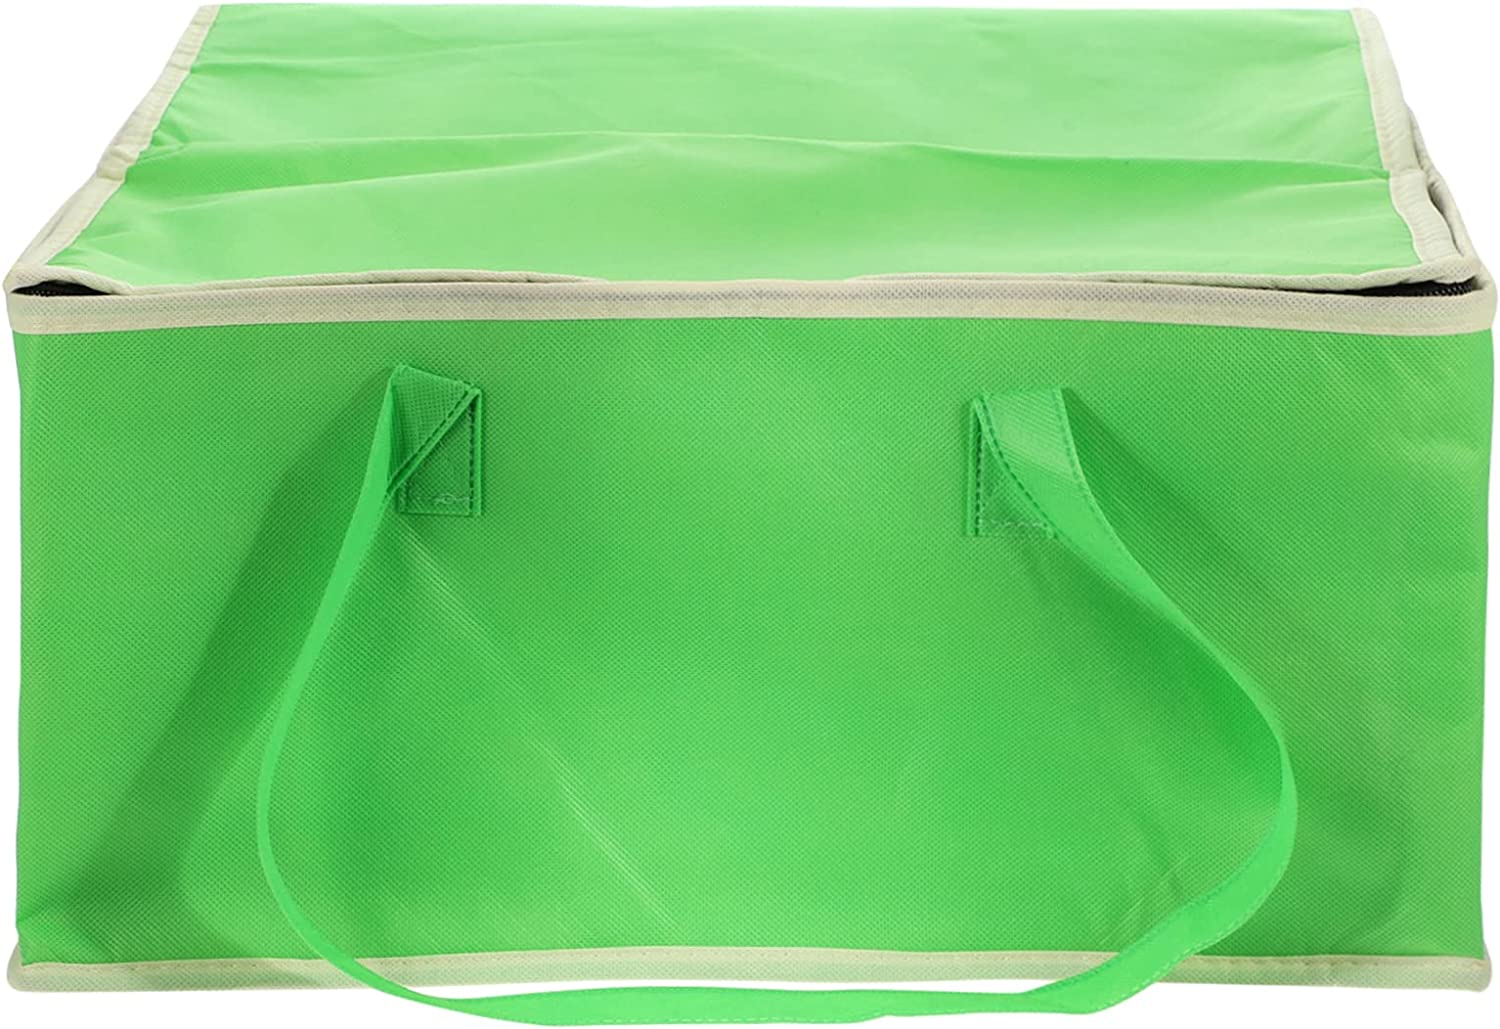 YARDWE Insulated 2021new shipping free Reusable Grocery Bag Meal Tote Food Del In a popularity